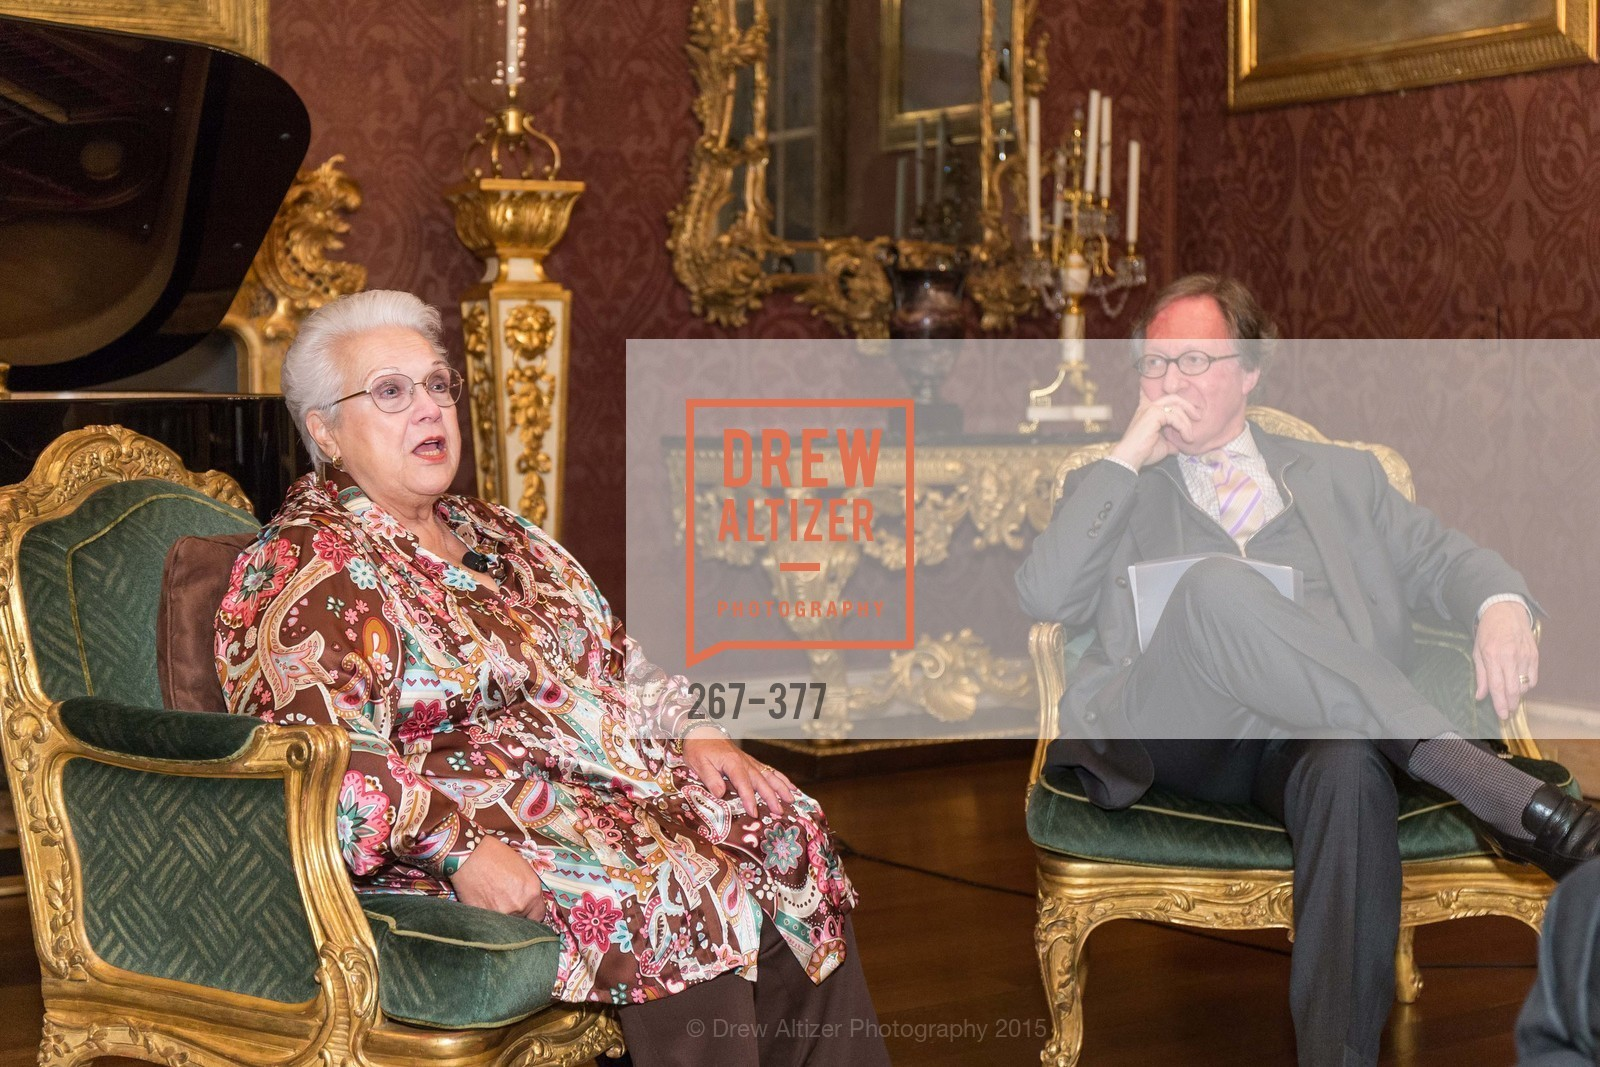 Marilyn Horne, Ann and Gordon Getty Host SF Conservatory of Music with Marilyn Horne, Private Residence, October 15th, 2015,Drew Altizer, Drew Altizer Photography, full-service agency, private events, San Francisco photographer, photographer california